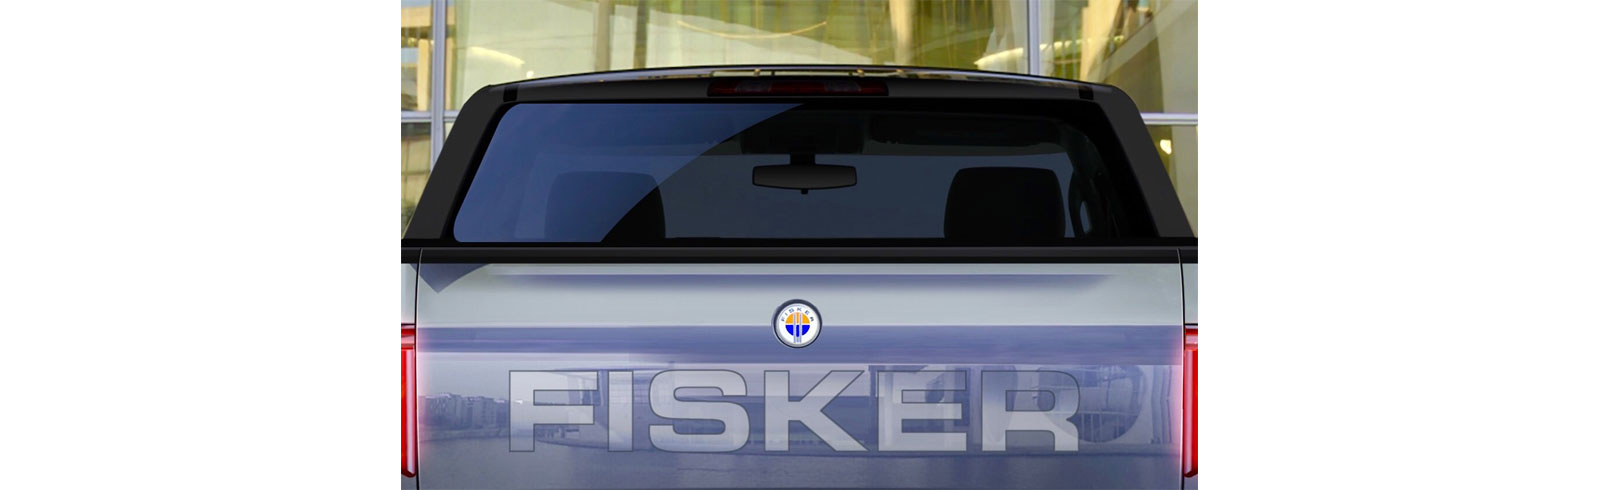 Fisker teases its second EV, might be a pickup truck